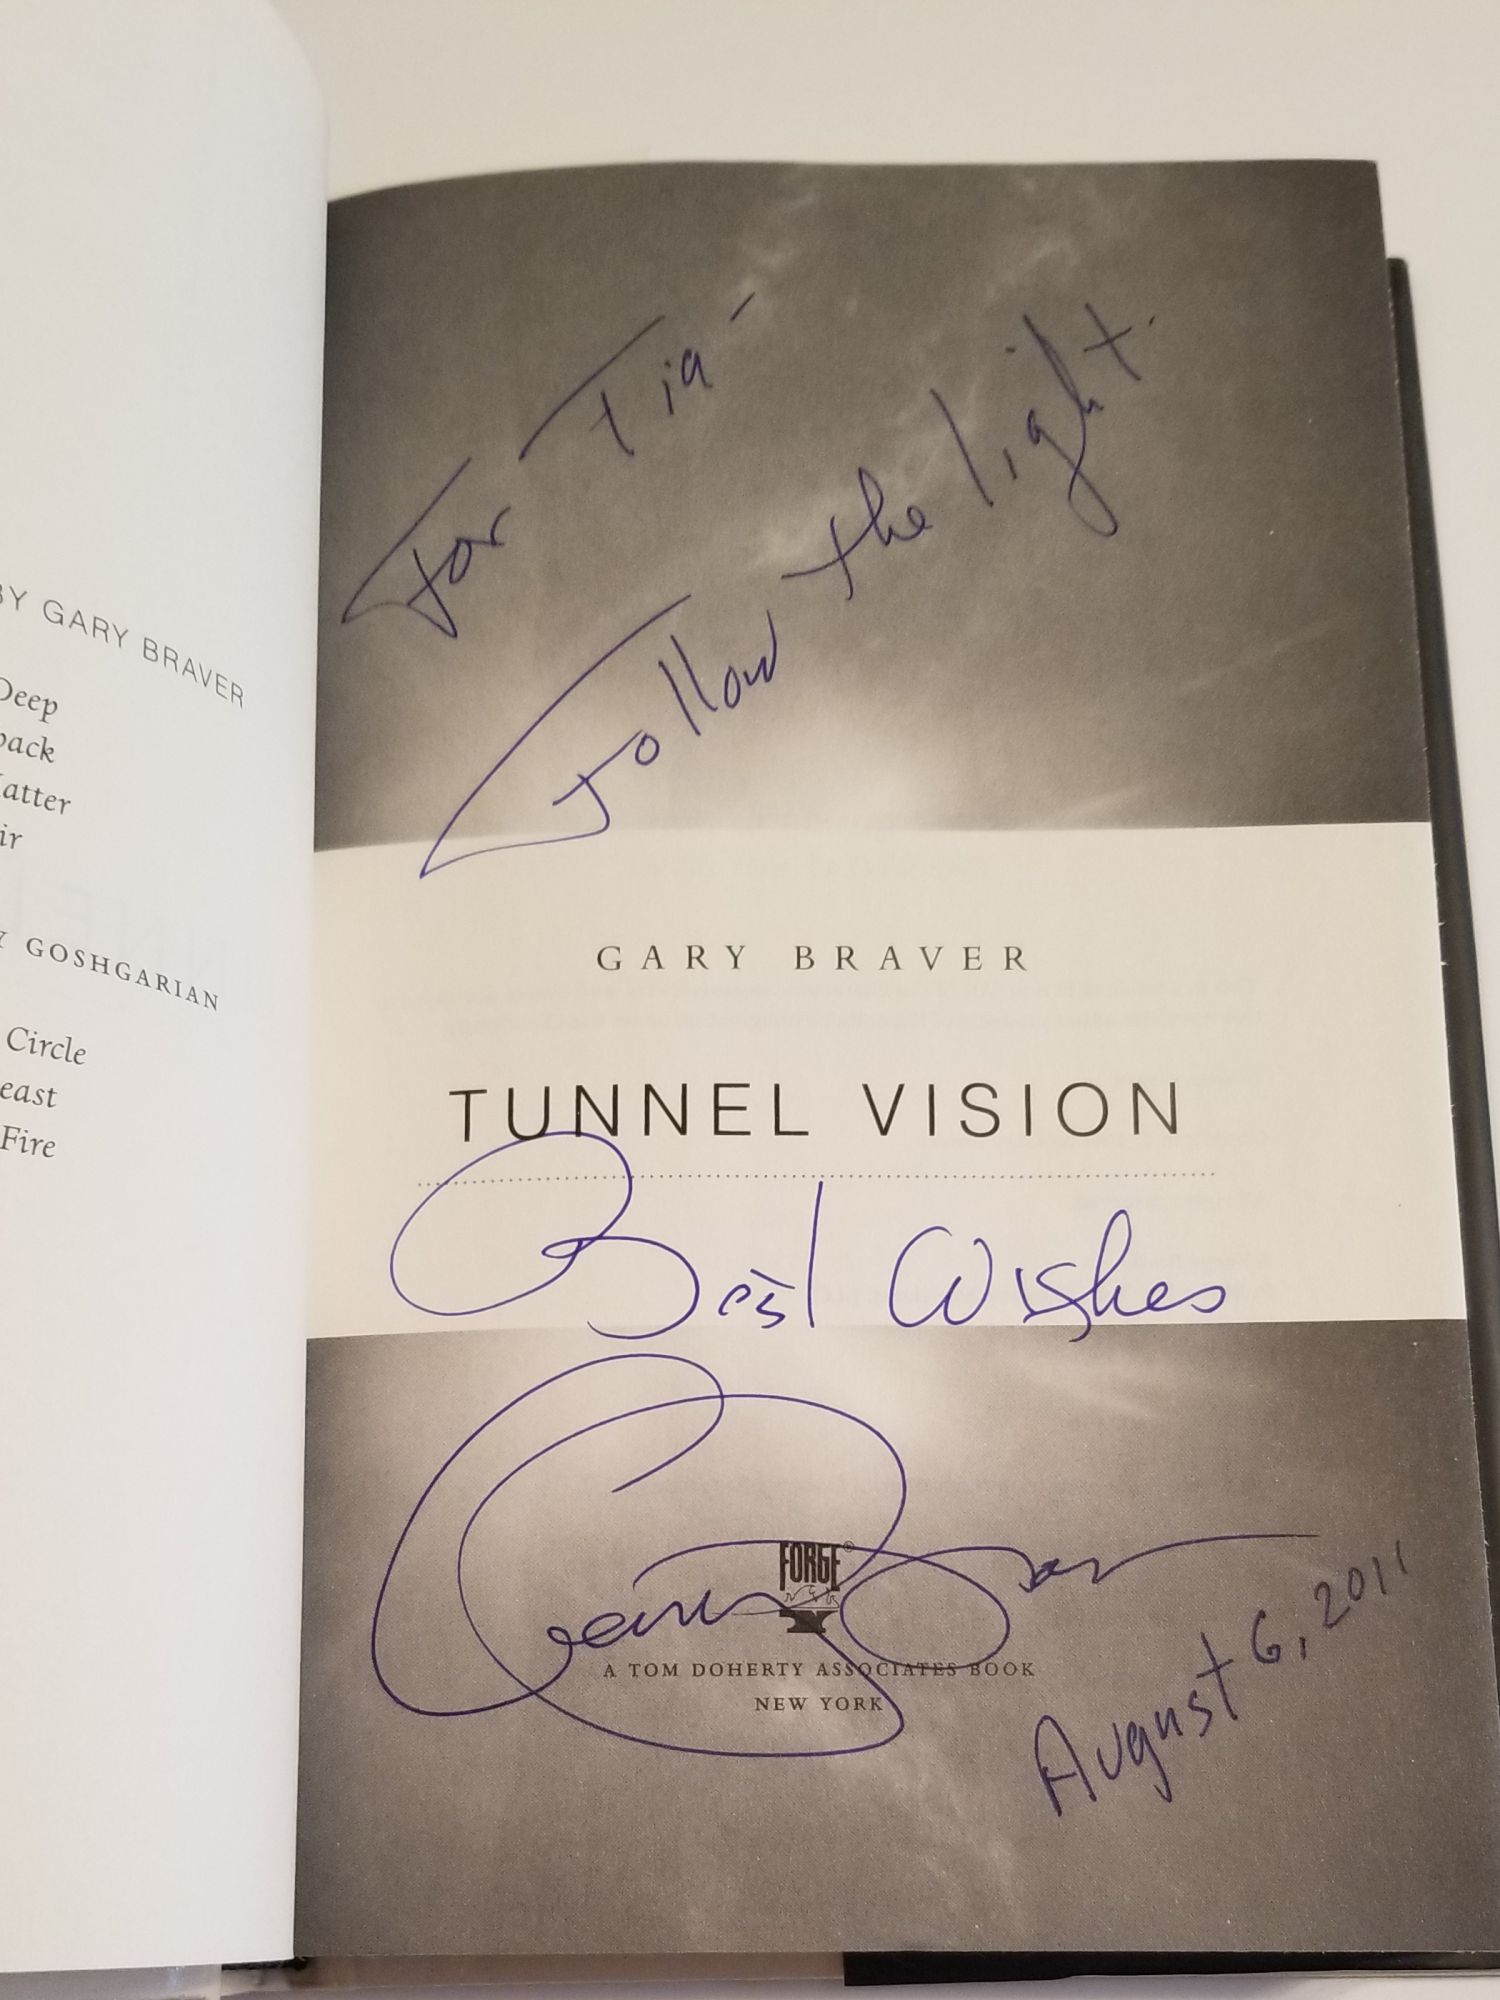 hight resolution of image 2 of 2 for tunnel vision